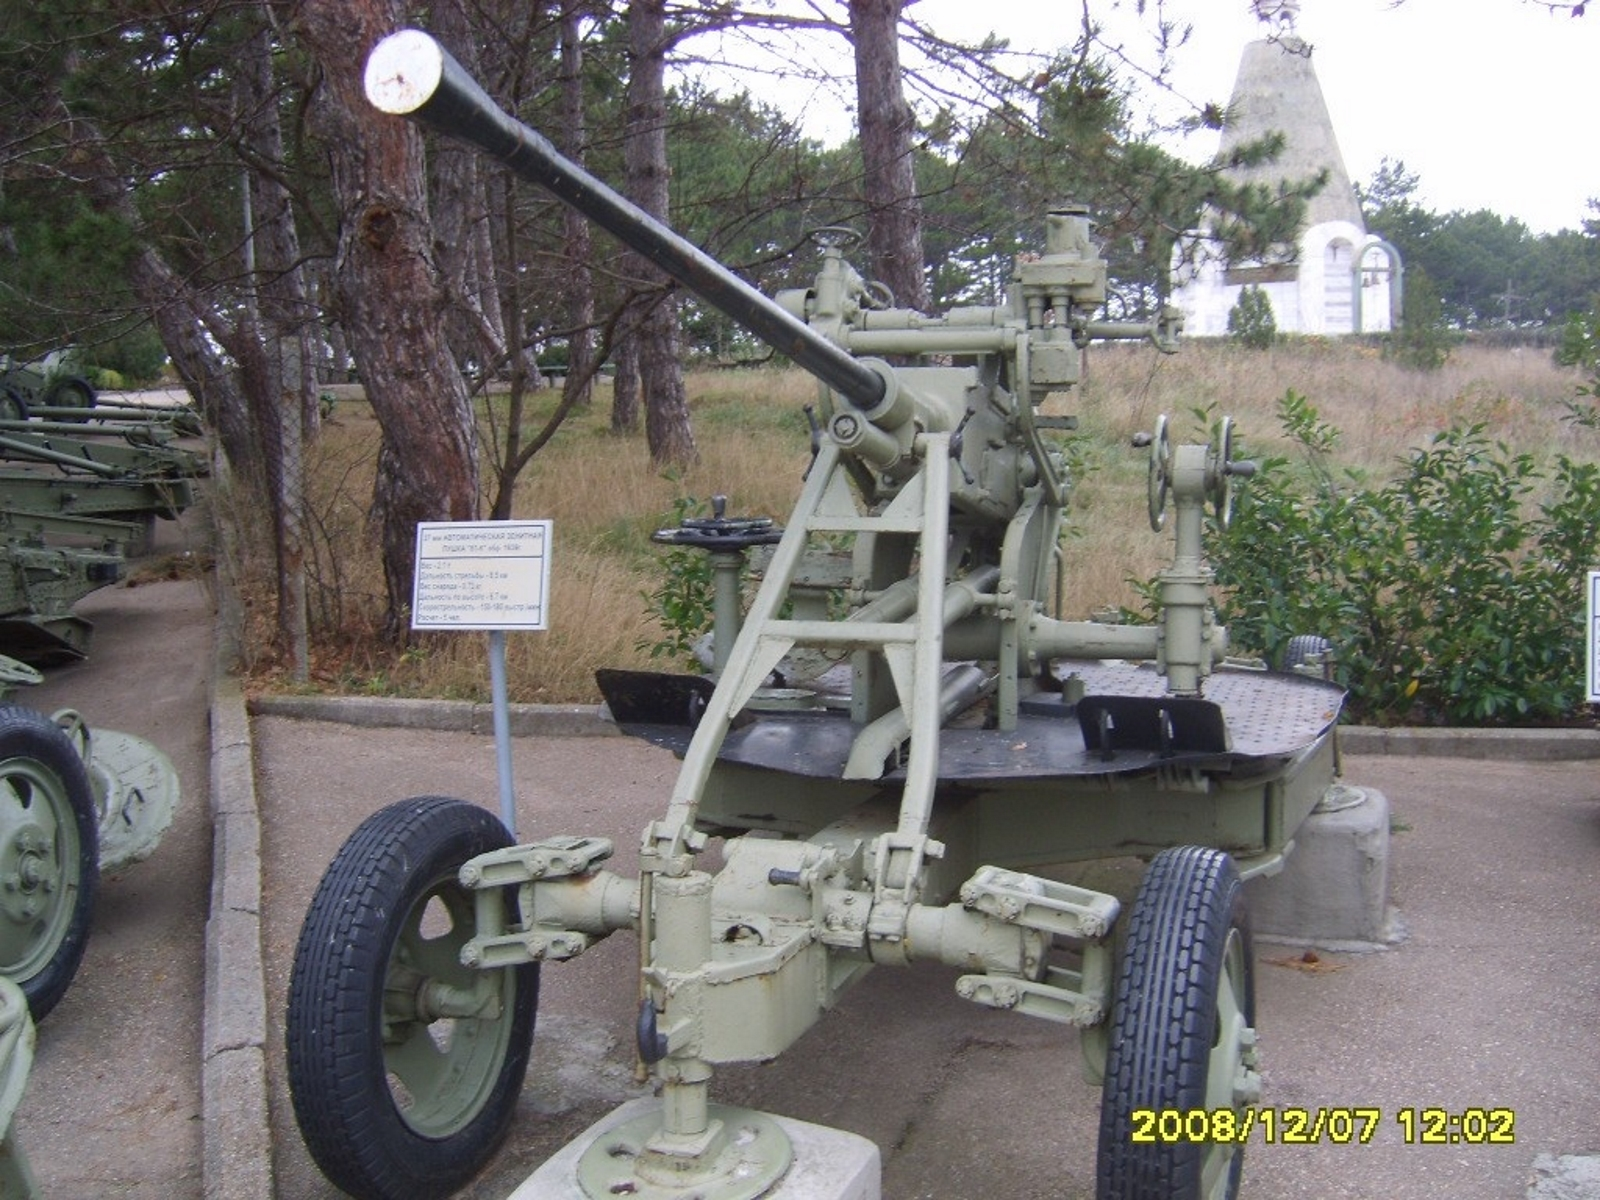 37mm Anti-aircraft gun